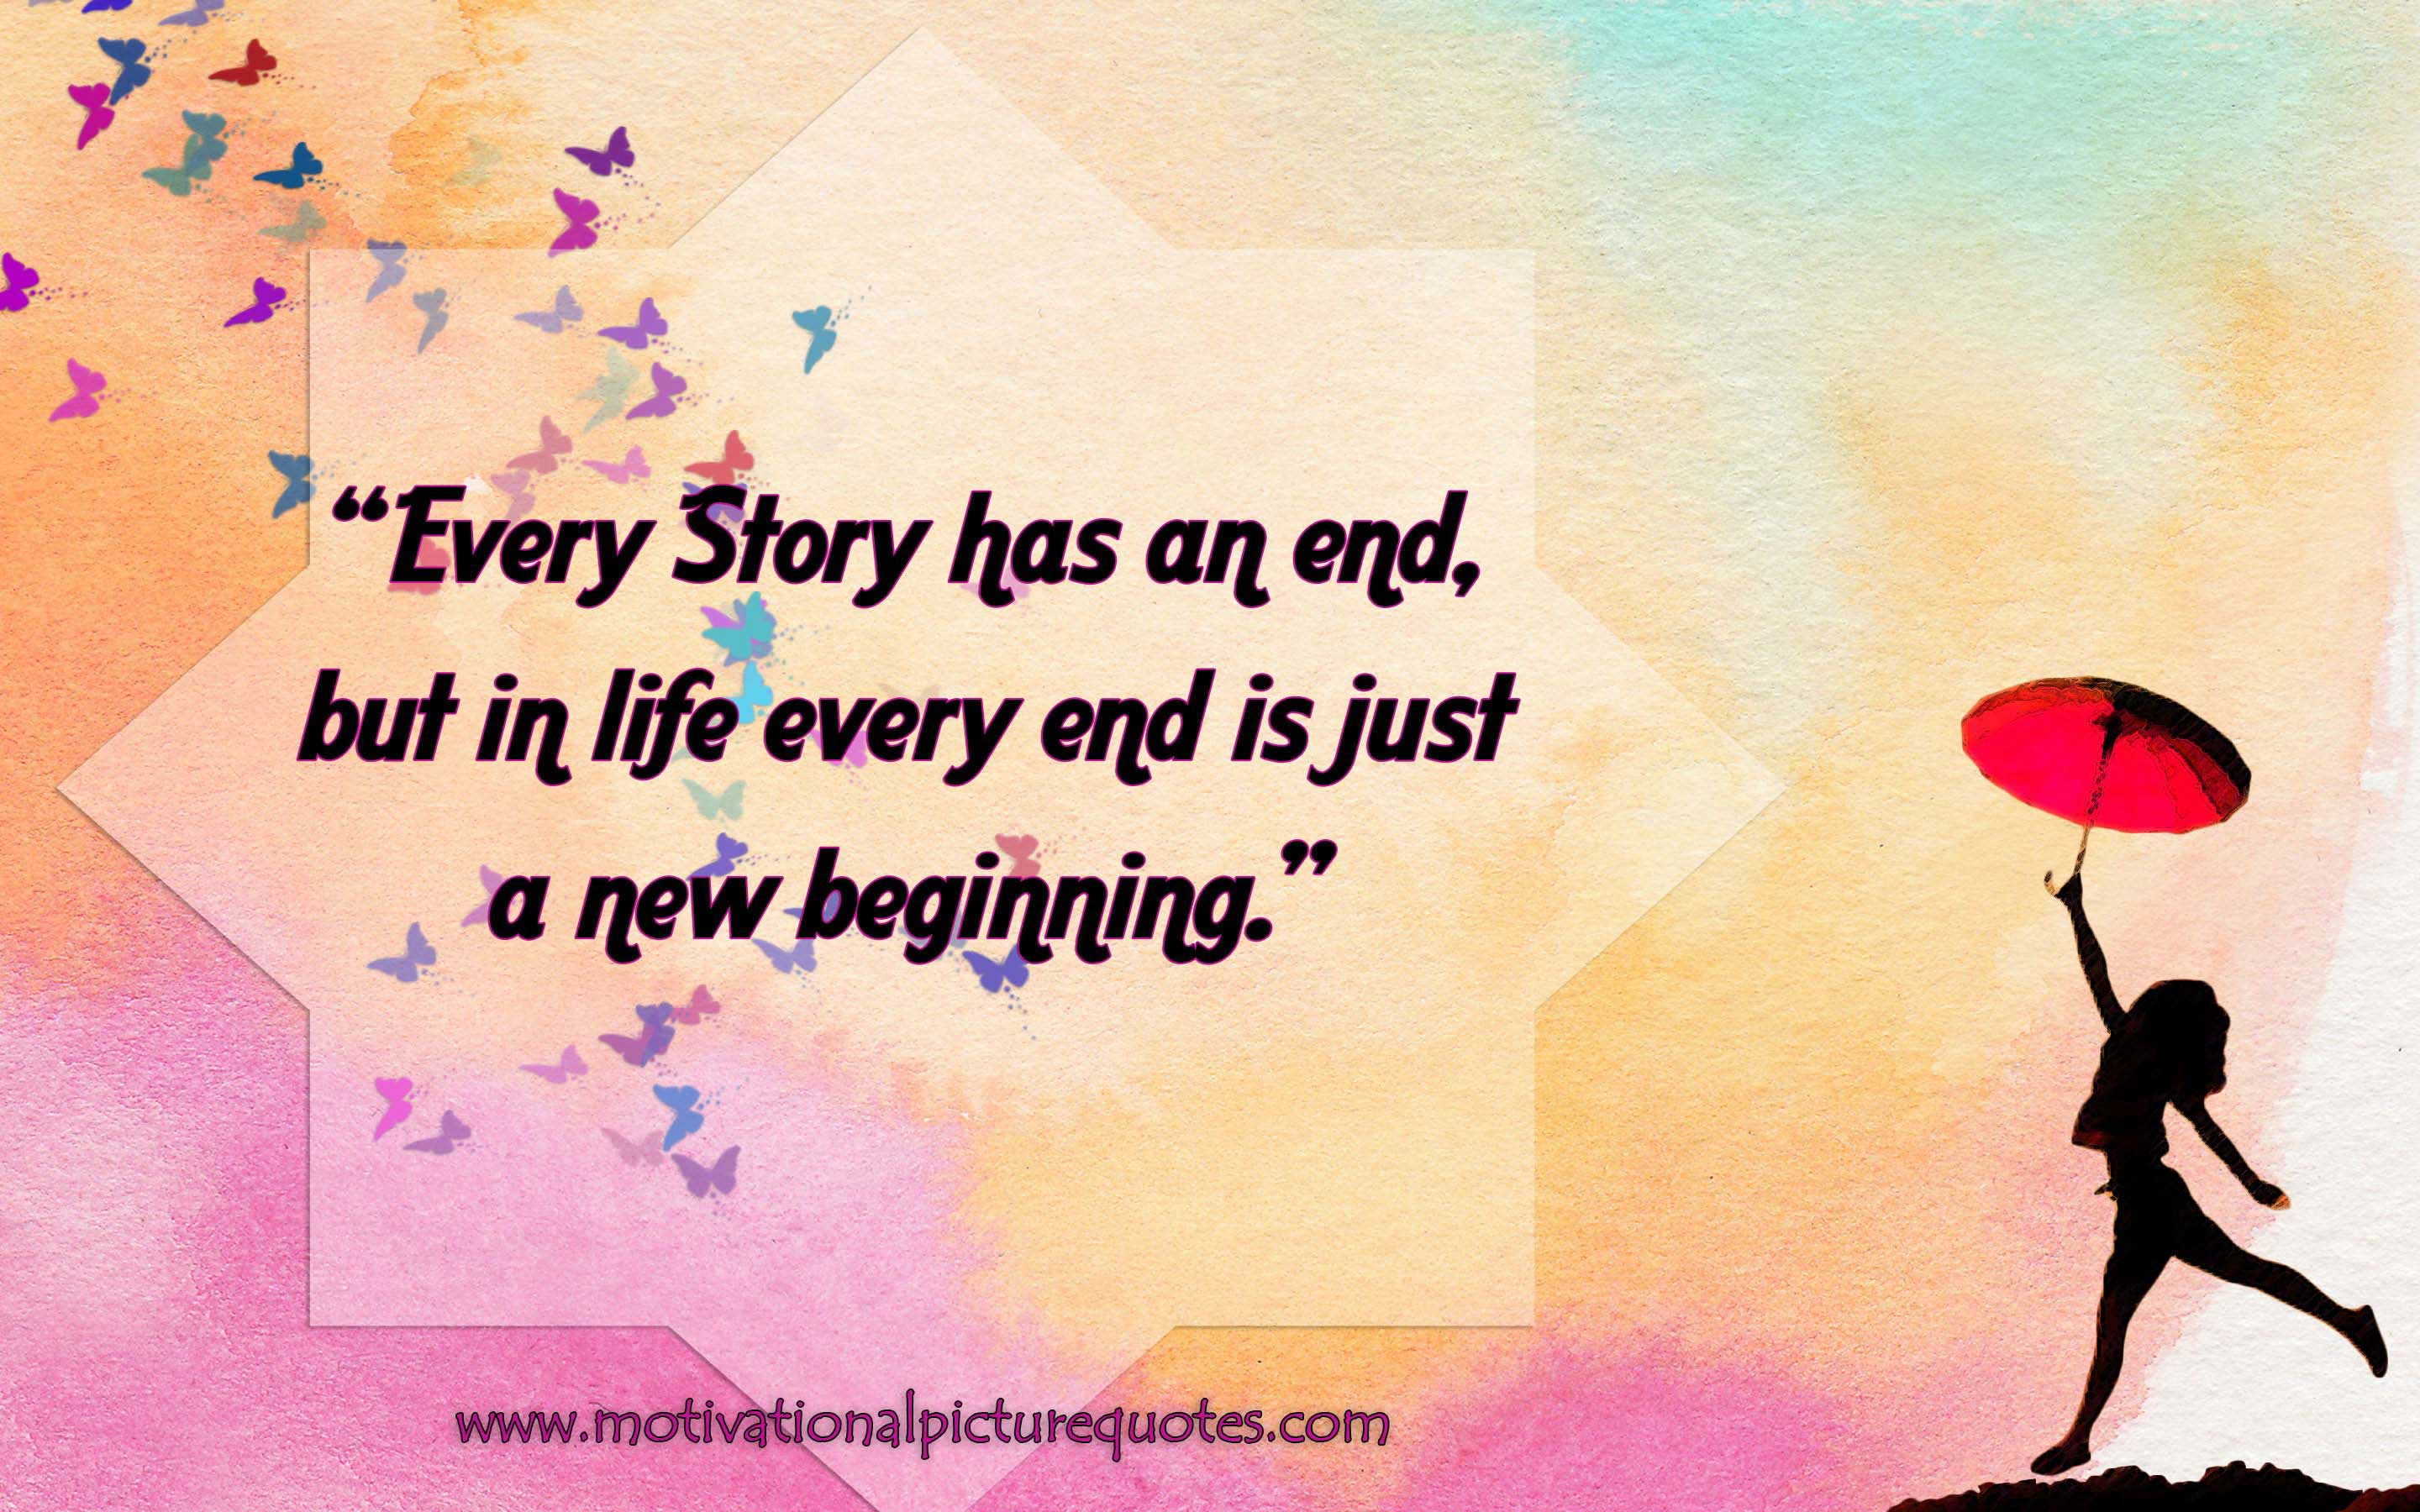 Every Story Has An End But In Life Every Ending Is Just: 50+ Best Life Quotes Images For Free Download